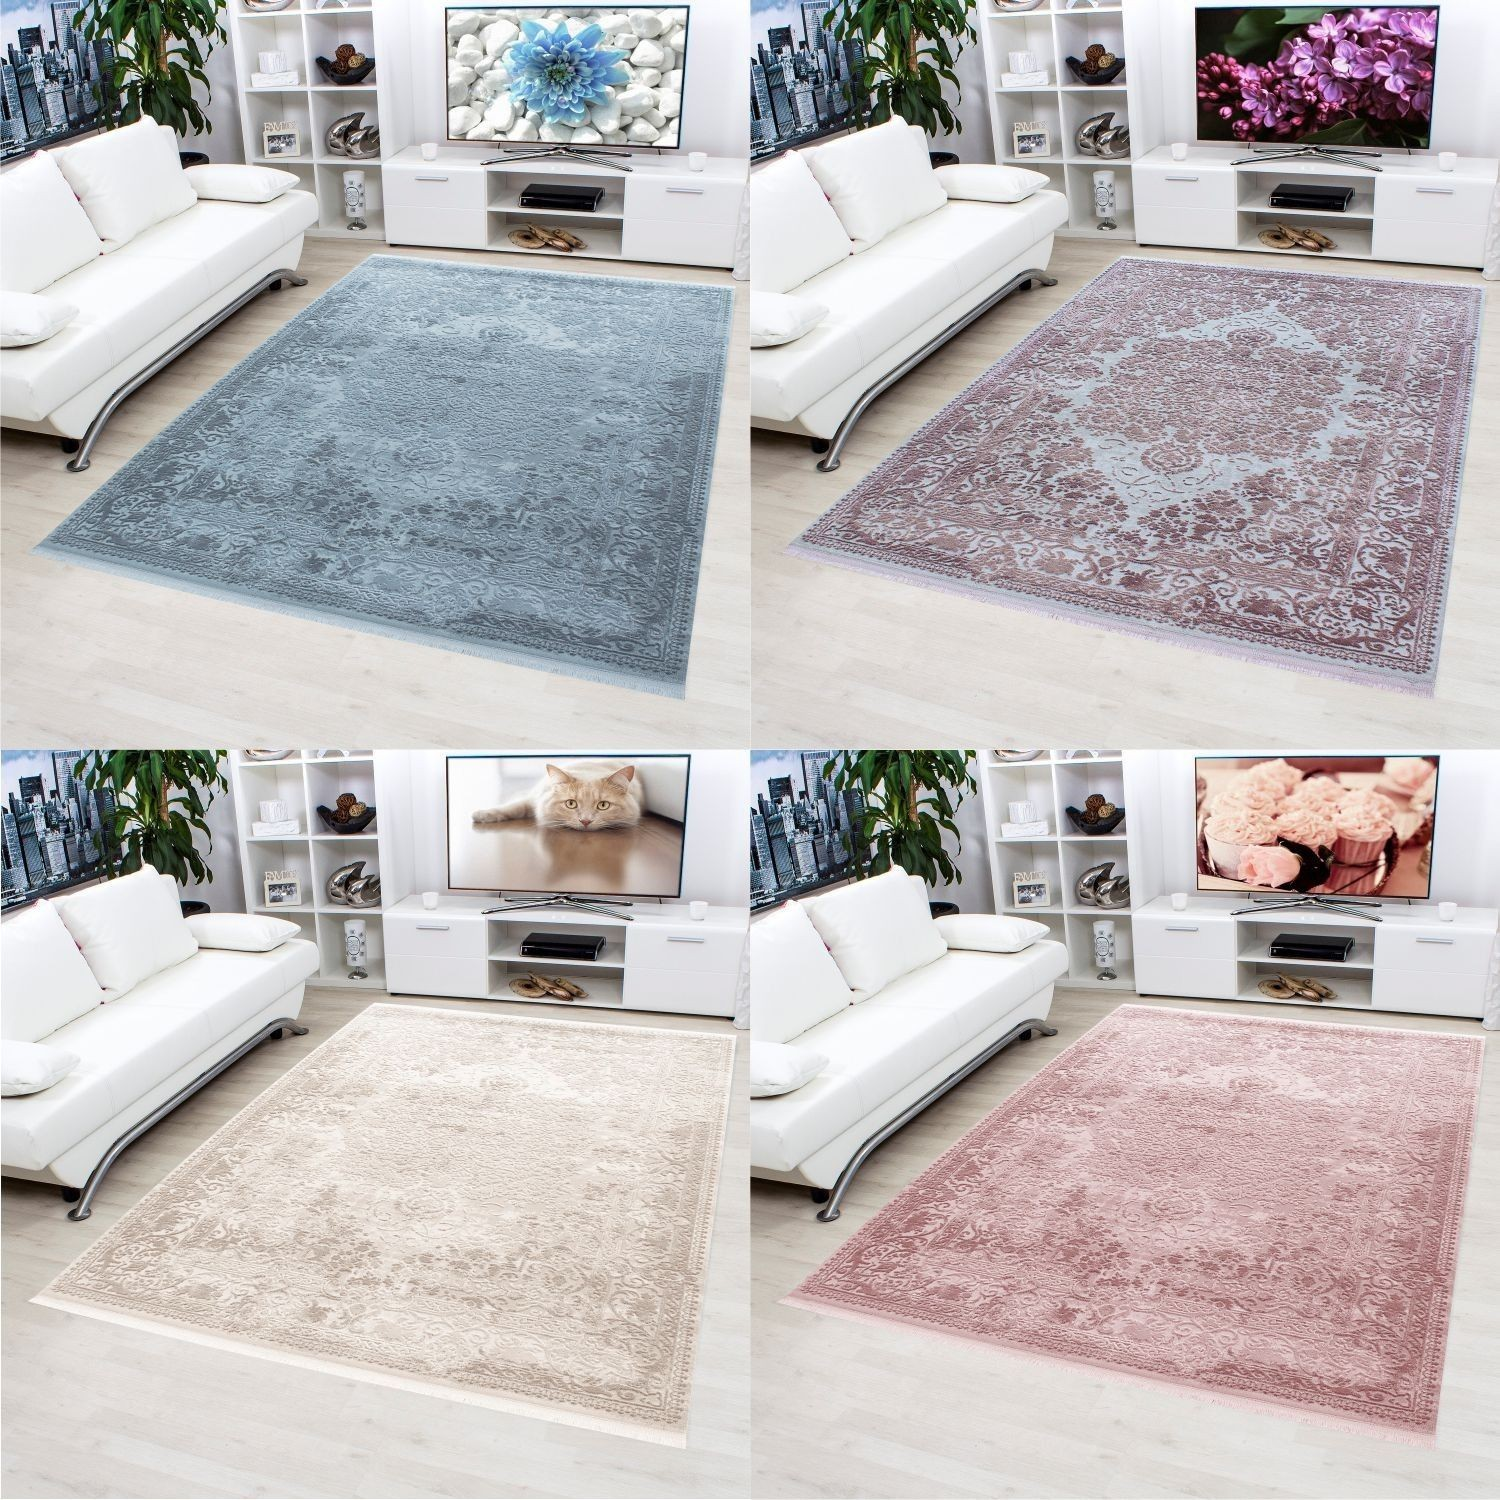 tapis baroque pas cher stunning tapis gris pas cher tapis gris tapis pas cher gris tapis rouge. Black Bedroom Furniture Sets. Home Design Ideas